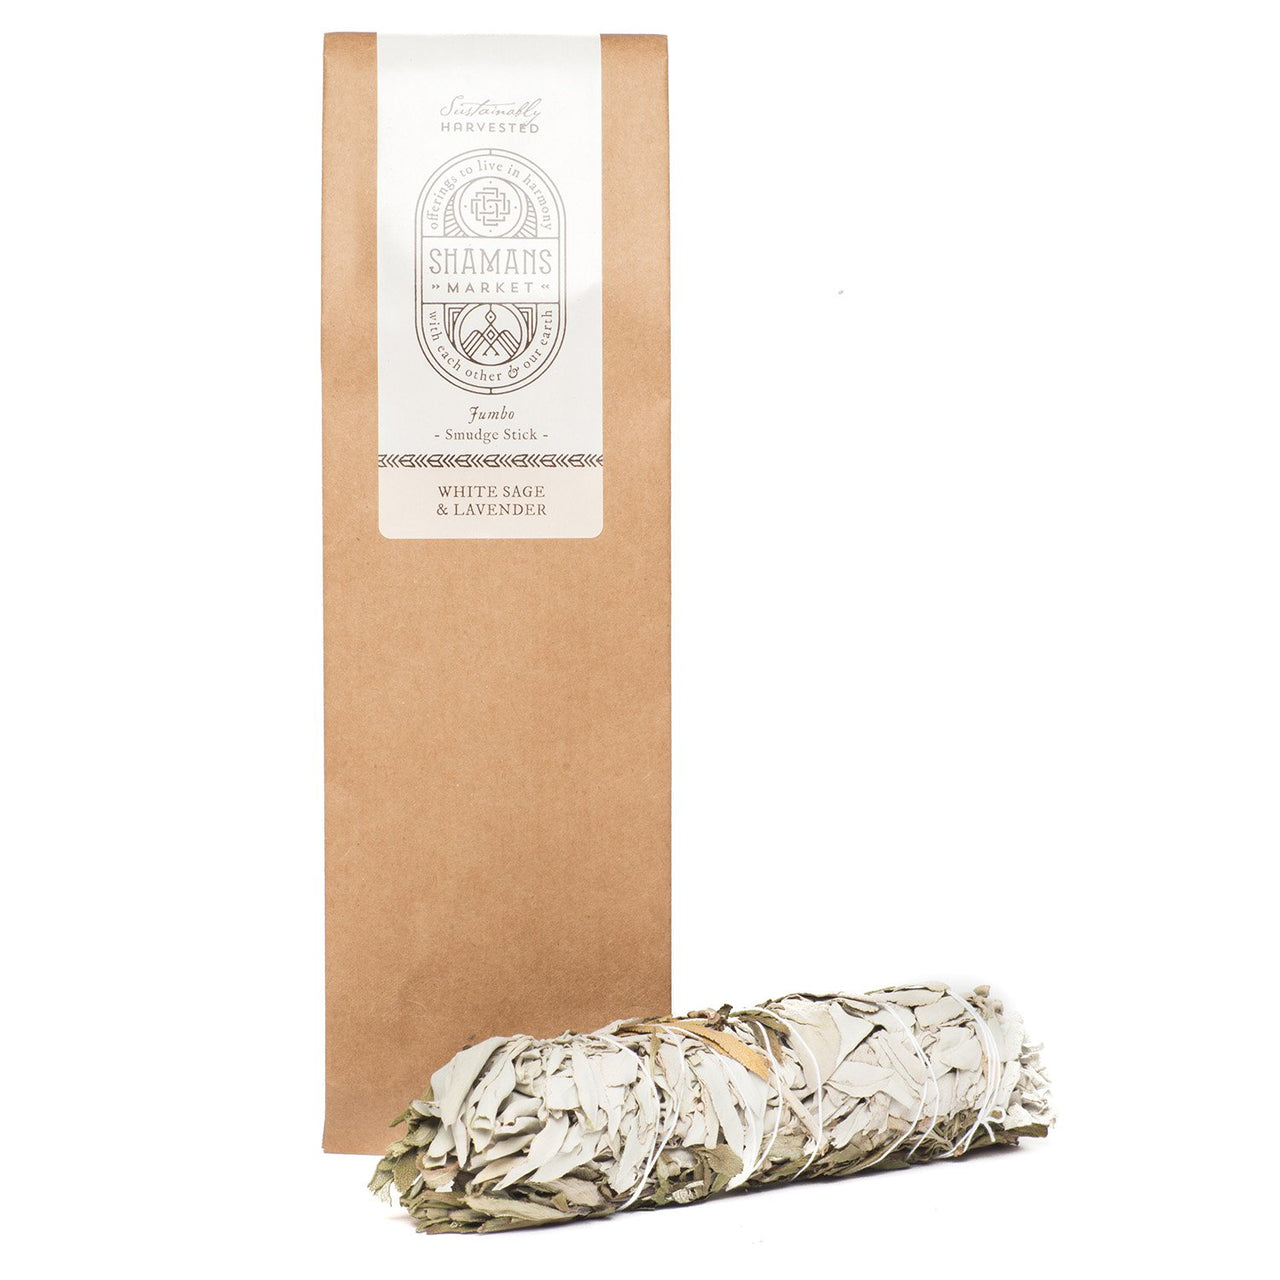 A mix of California White sage and Lavender. Can be used in a ritual ceremony, house cleansing or simply for aroma pleasure.